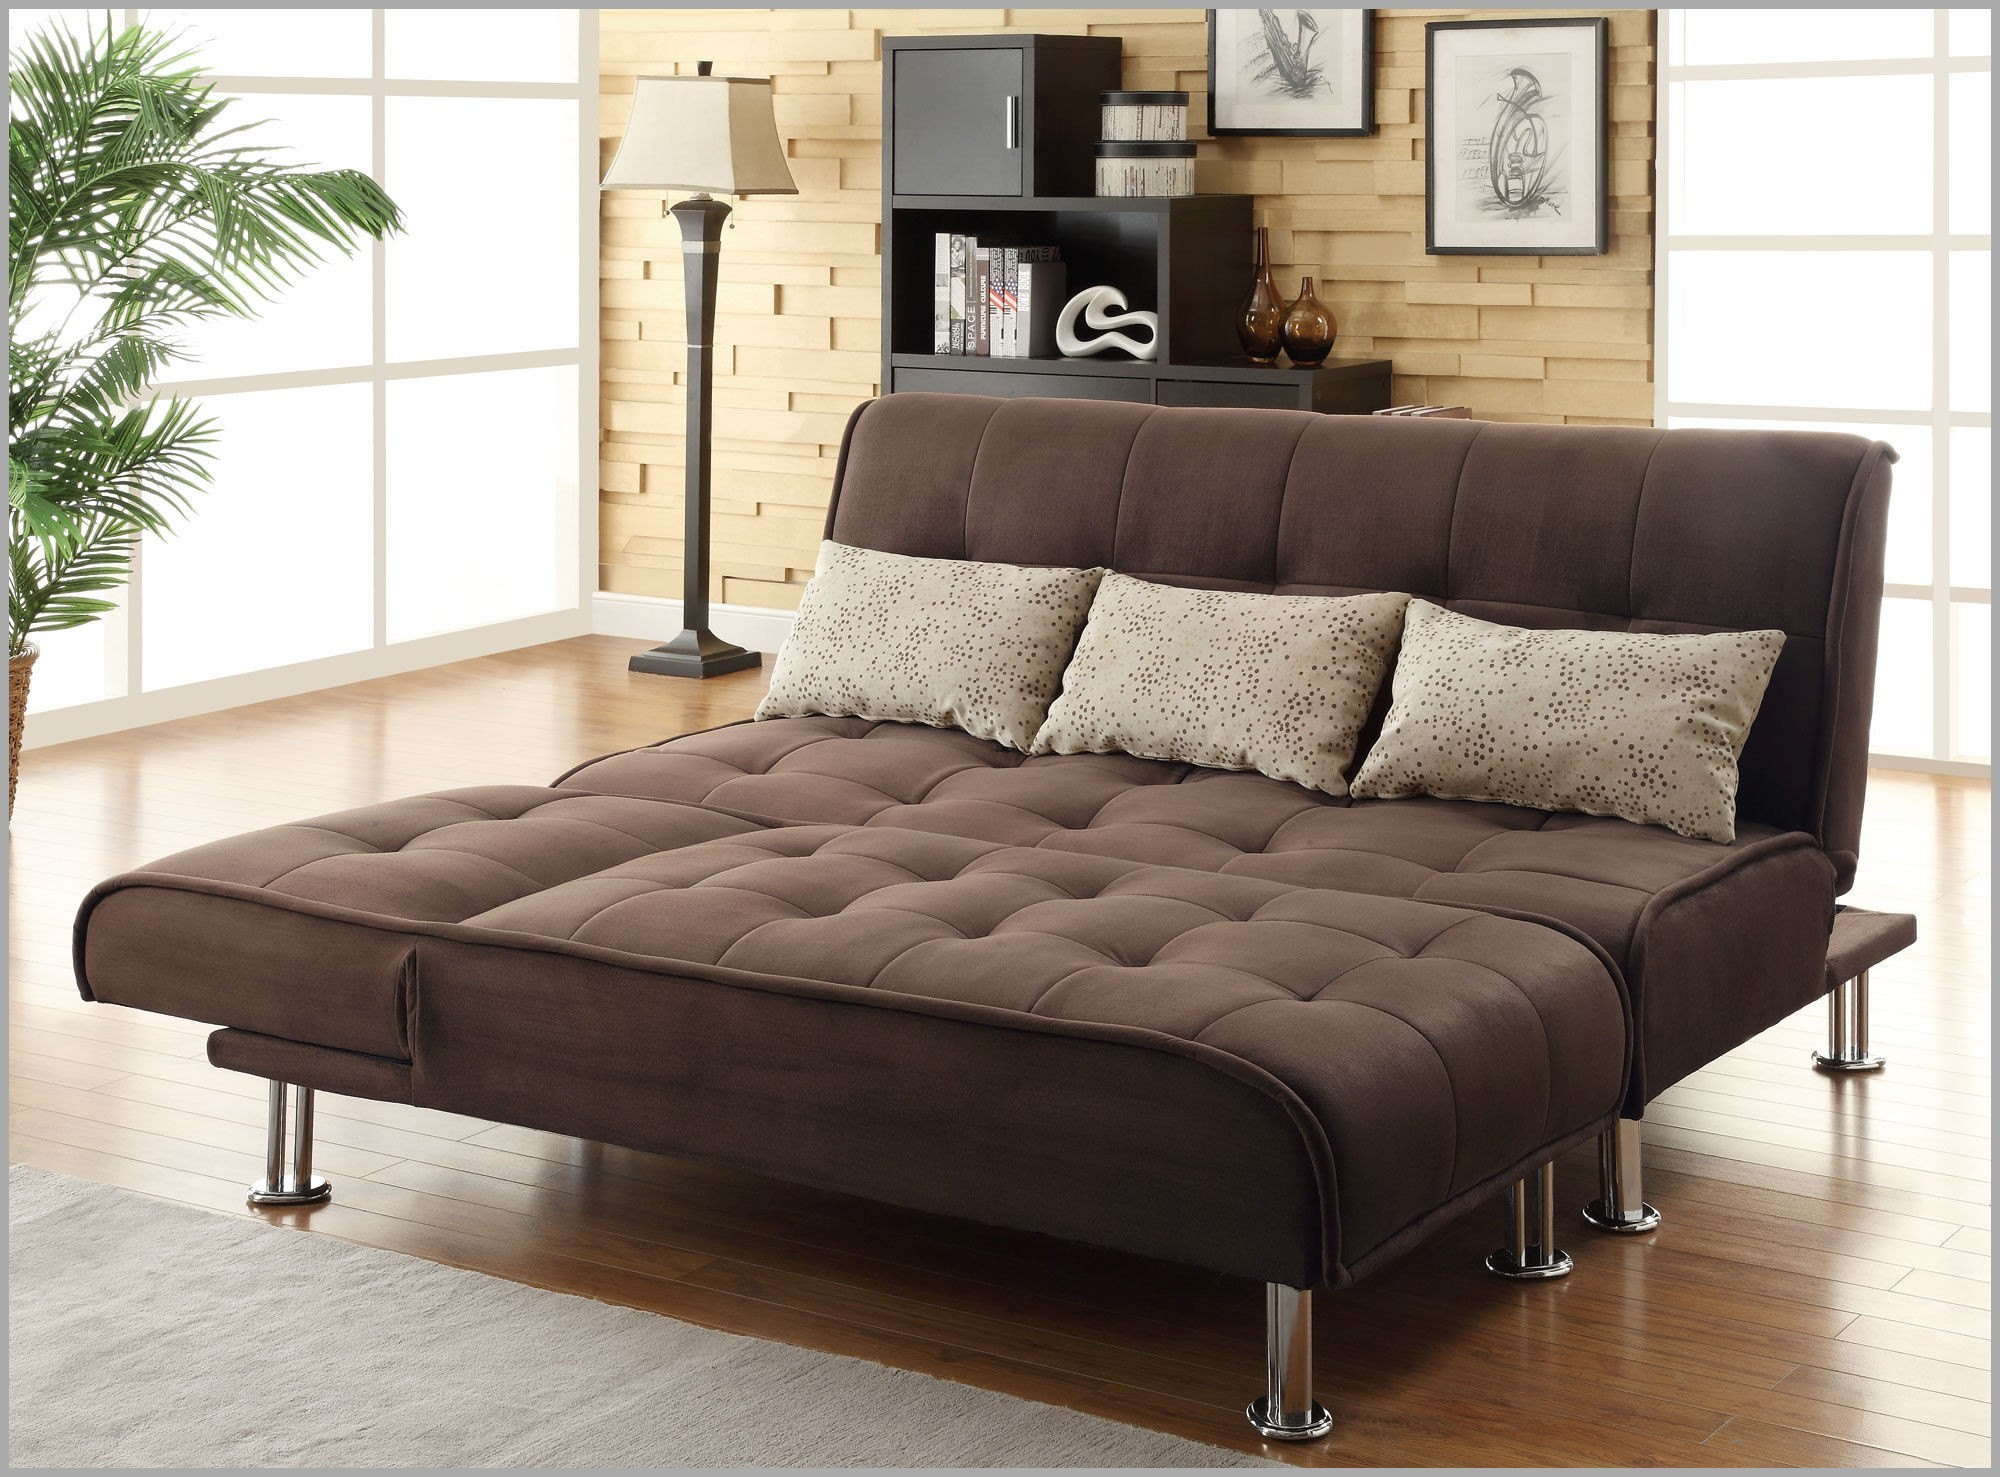 Sofa Bed King Size Awesome Outstanding sofa Bed King Size Decorative sofa Ideas Wallpaper